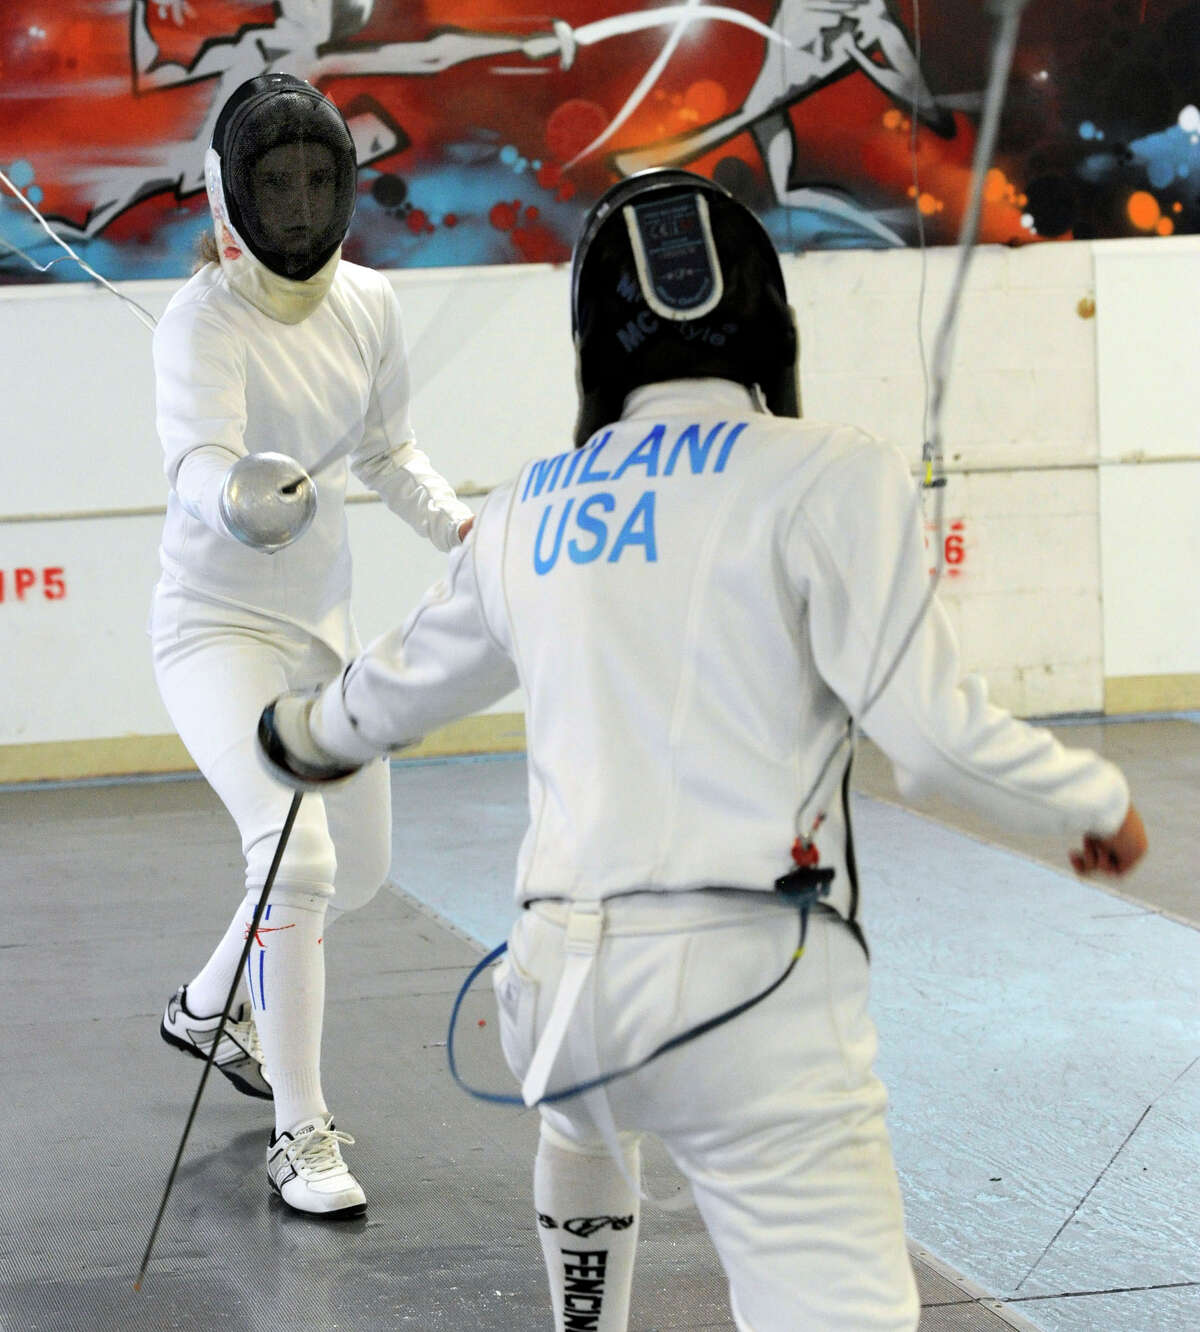 Lyric Lott, 13, left, of Roxbury, and Greg Milani, 15, of Brewster, N.Y., fence at the Candlewood Fencing Center in Danbury, Monday, July 30, 2012.